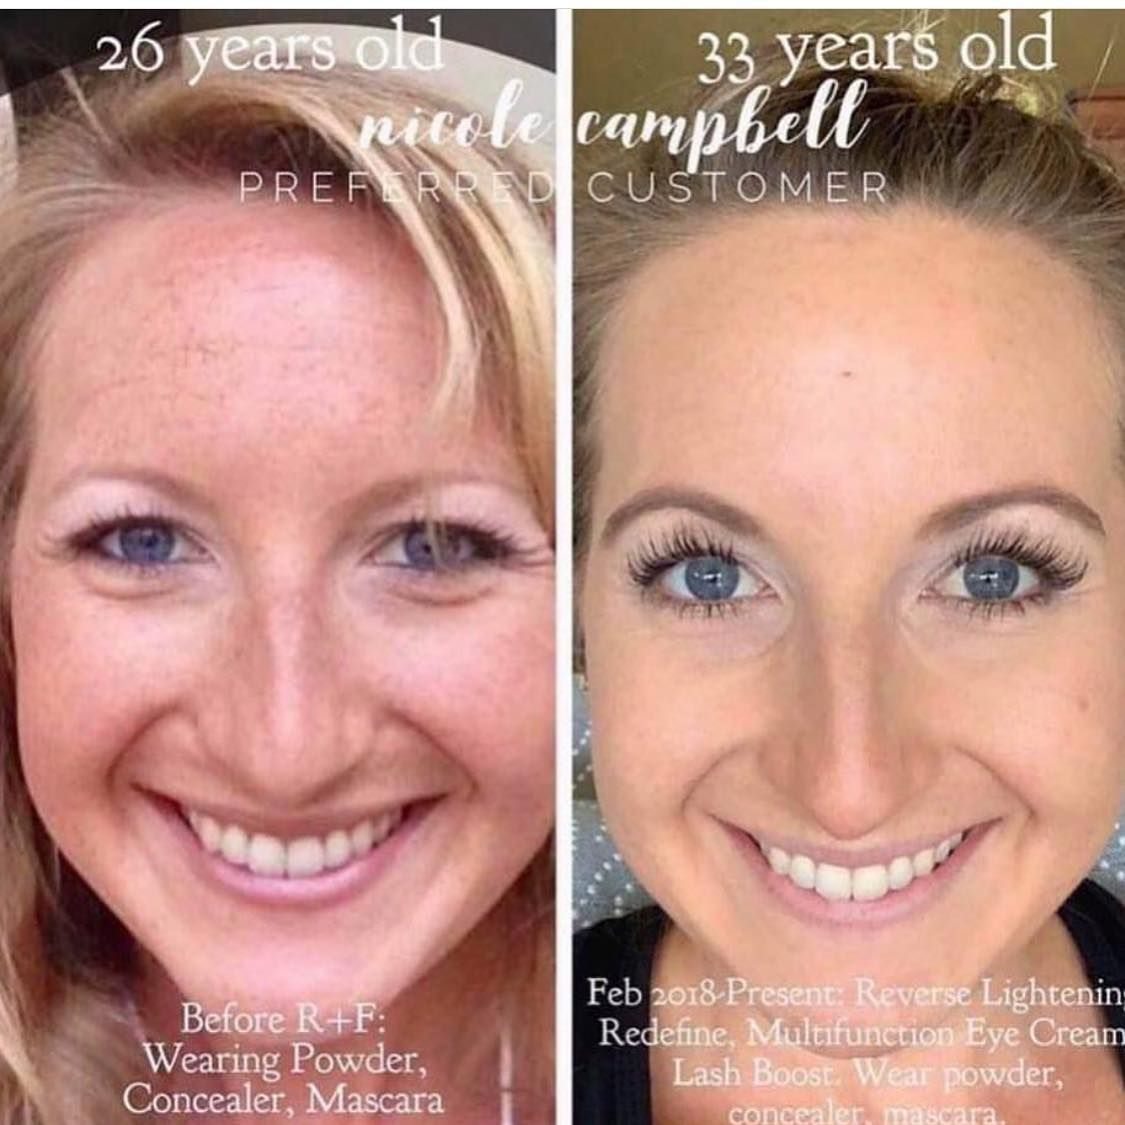 Marionette Lines 5 Tips For How To Look 26 At 48 Naturally In 2020 Clear Skin Tips Skin Tightening Cream Anti Aging Skin Products